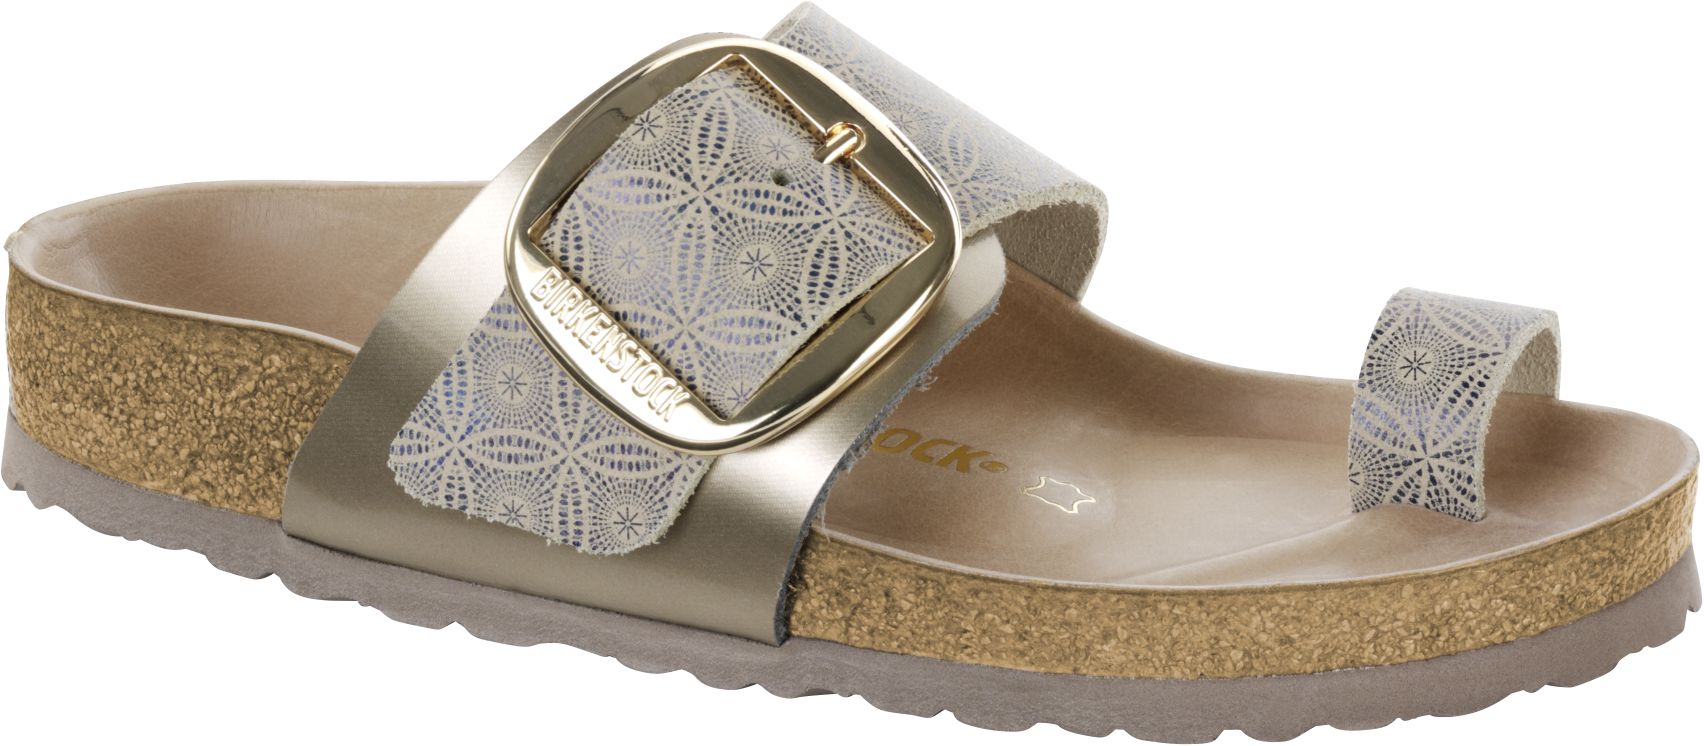 9e2afb272b65 Next product. Birkenstock. Birkenstock Miramar Big Buckle NL Ceramic  Pattern Blue. Hover to zoom